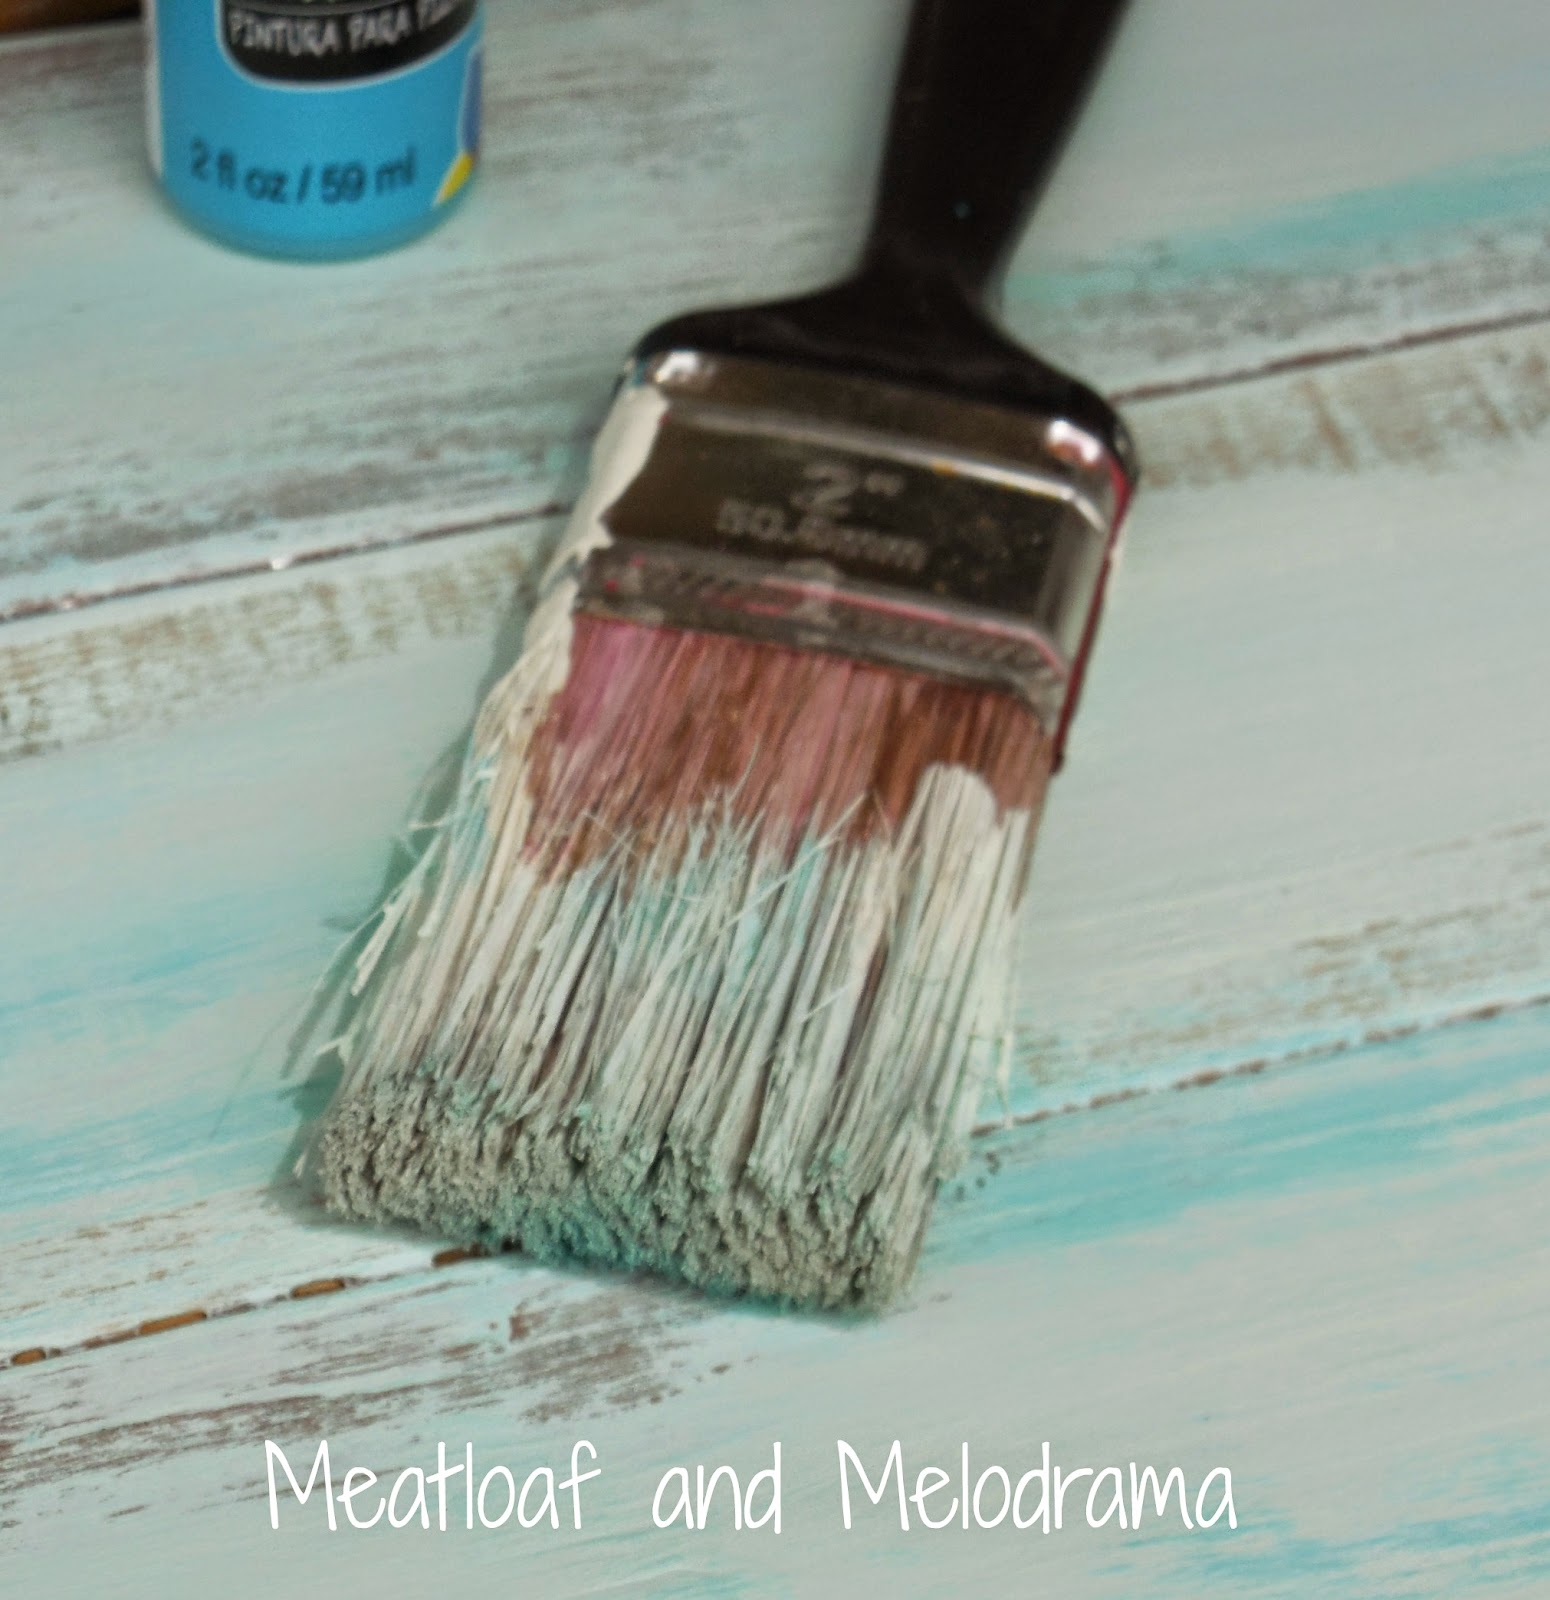 blue and white paint dry brush